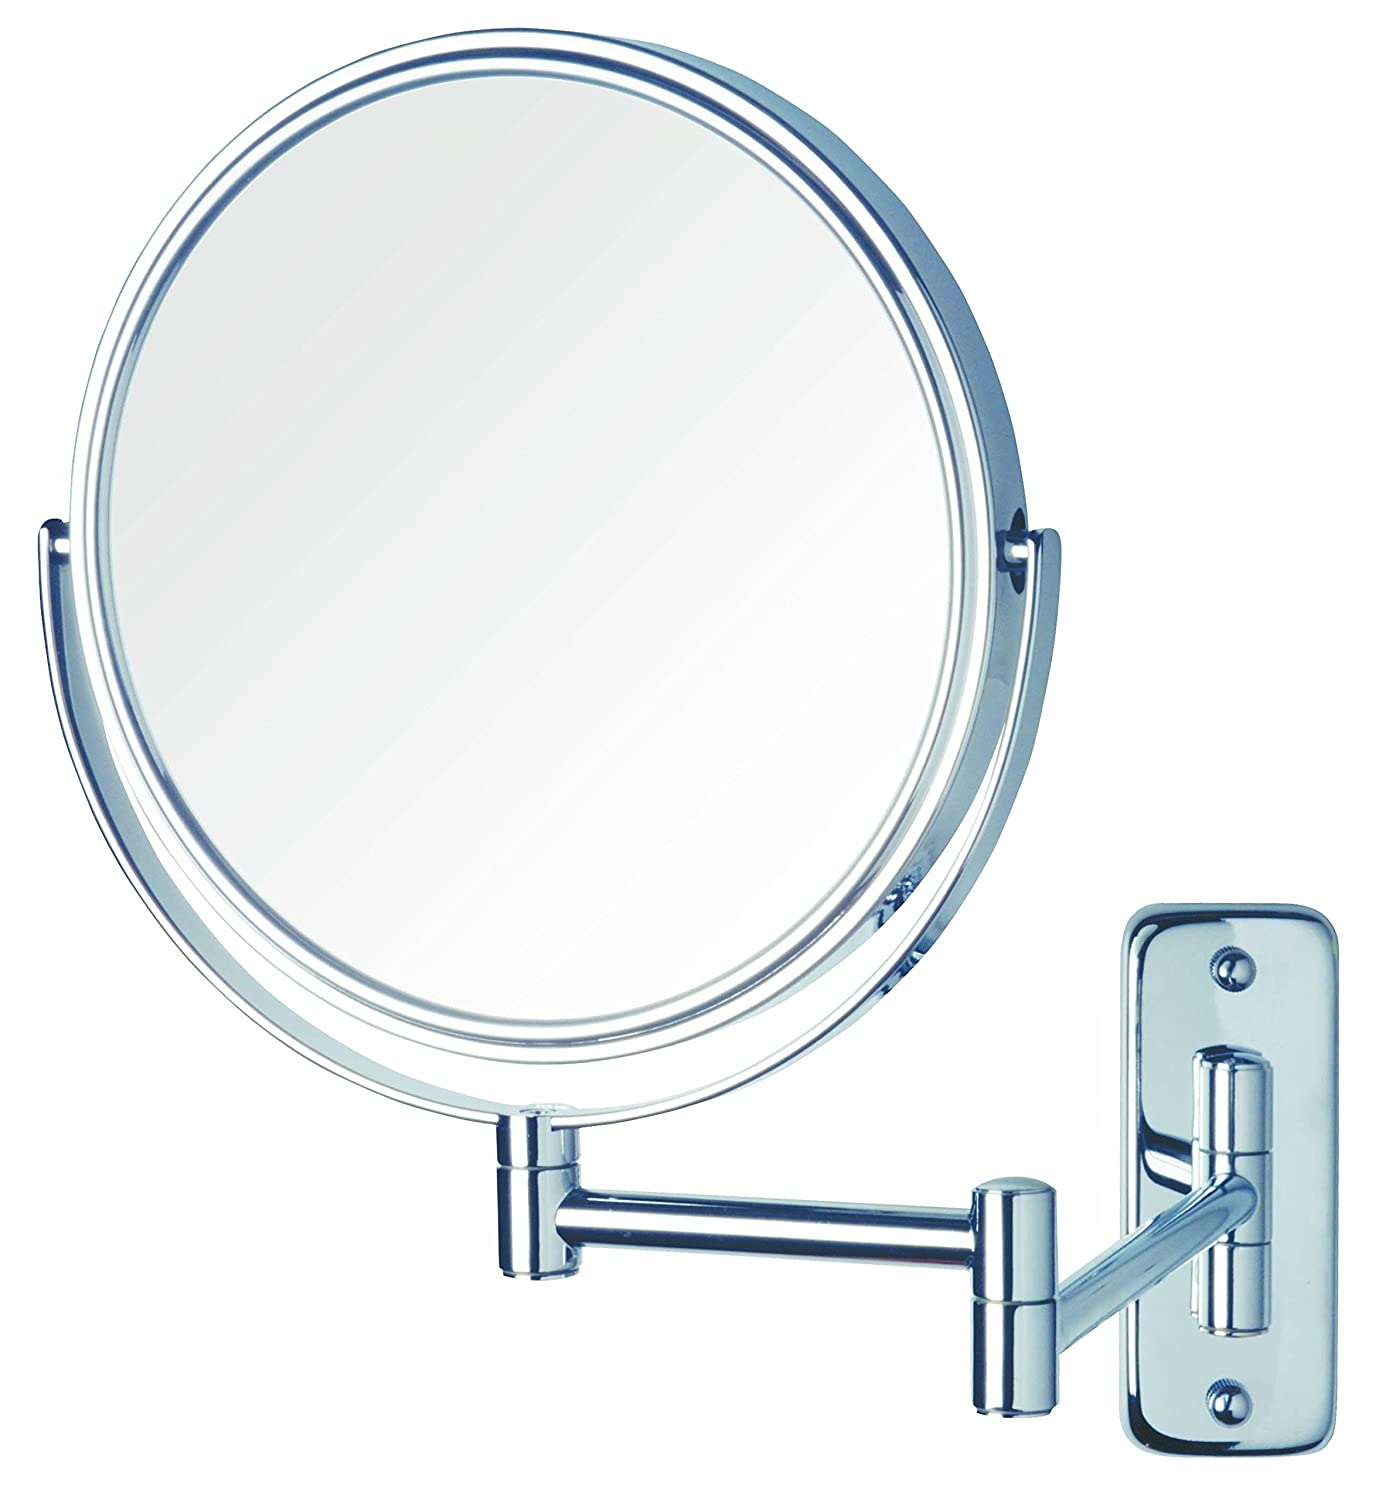 Jerdon JP7808N 8-Inch Two-Sided Swivel Wall Mount Mirror with 8x Magnification, 13.5-Inch Extension, Nickel Finish